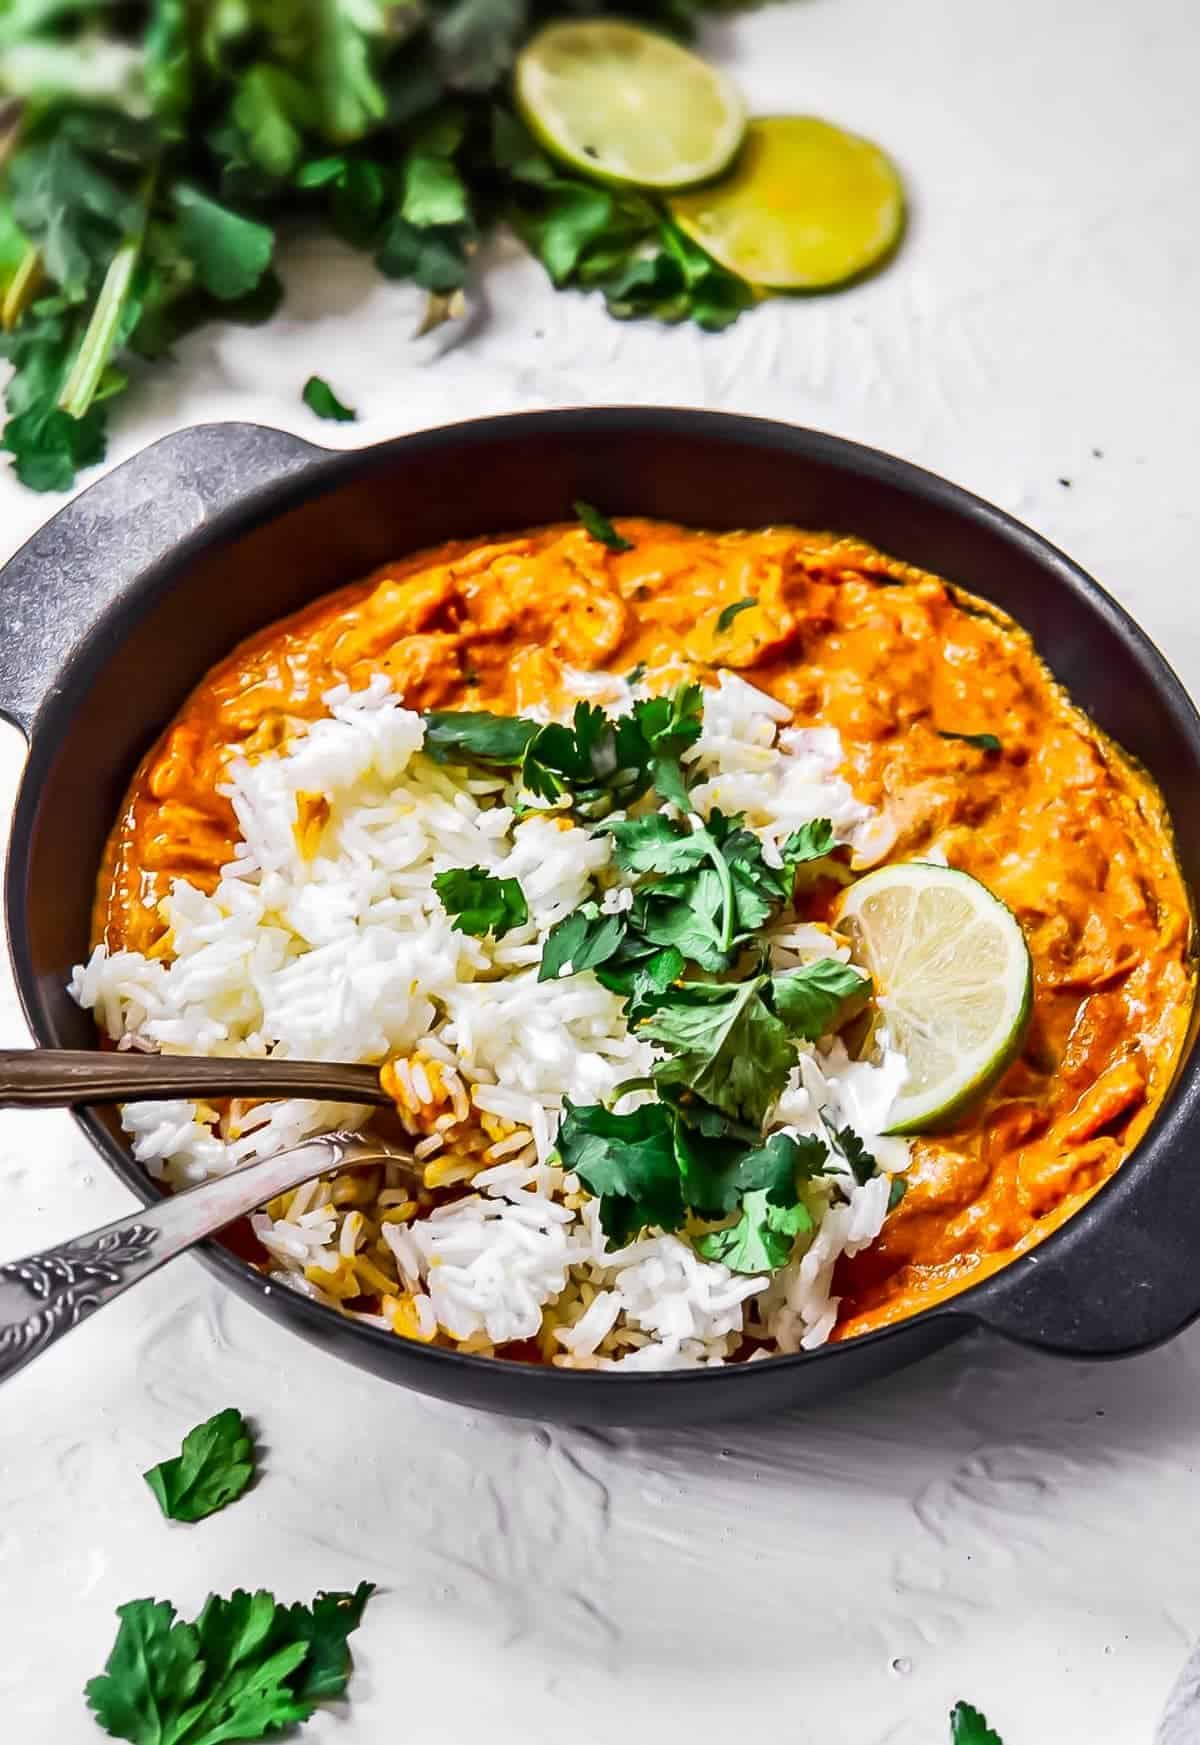 Chicken tikka masala recipe with rice and cilantro